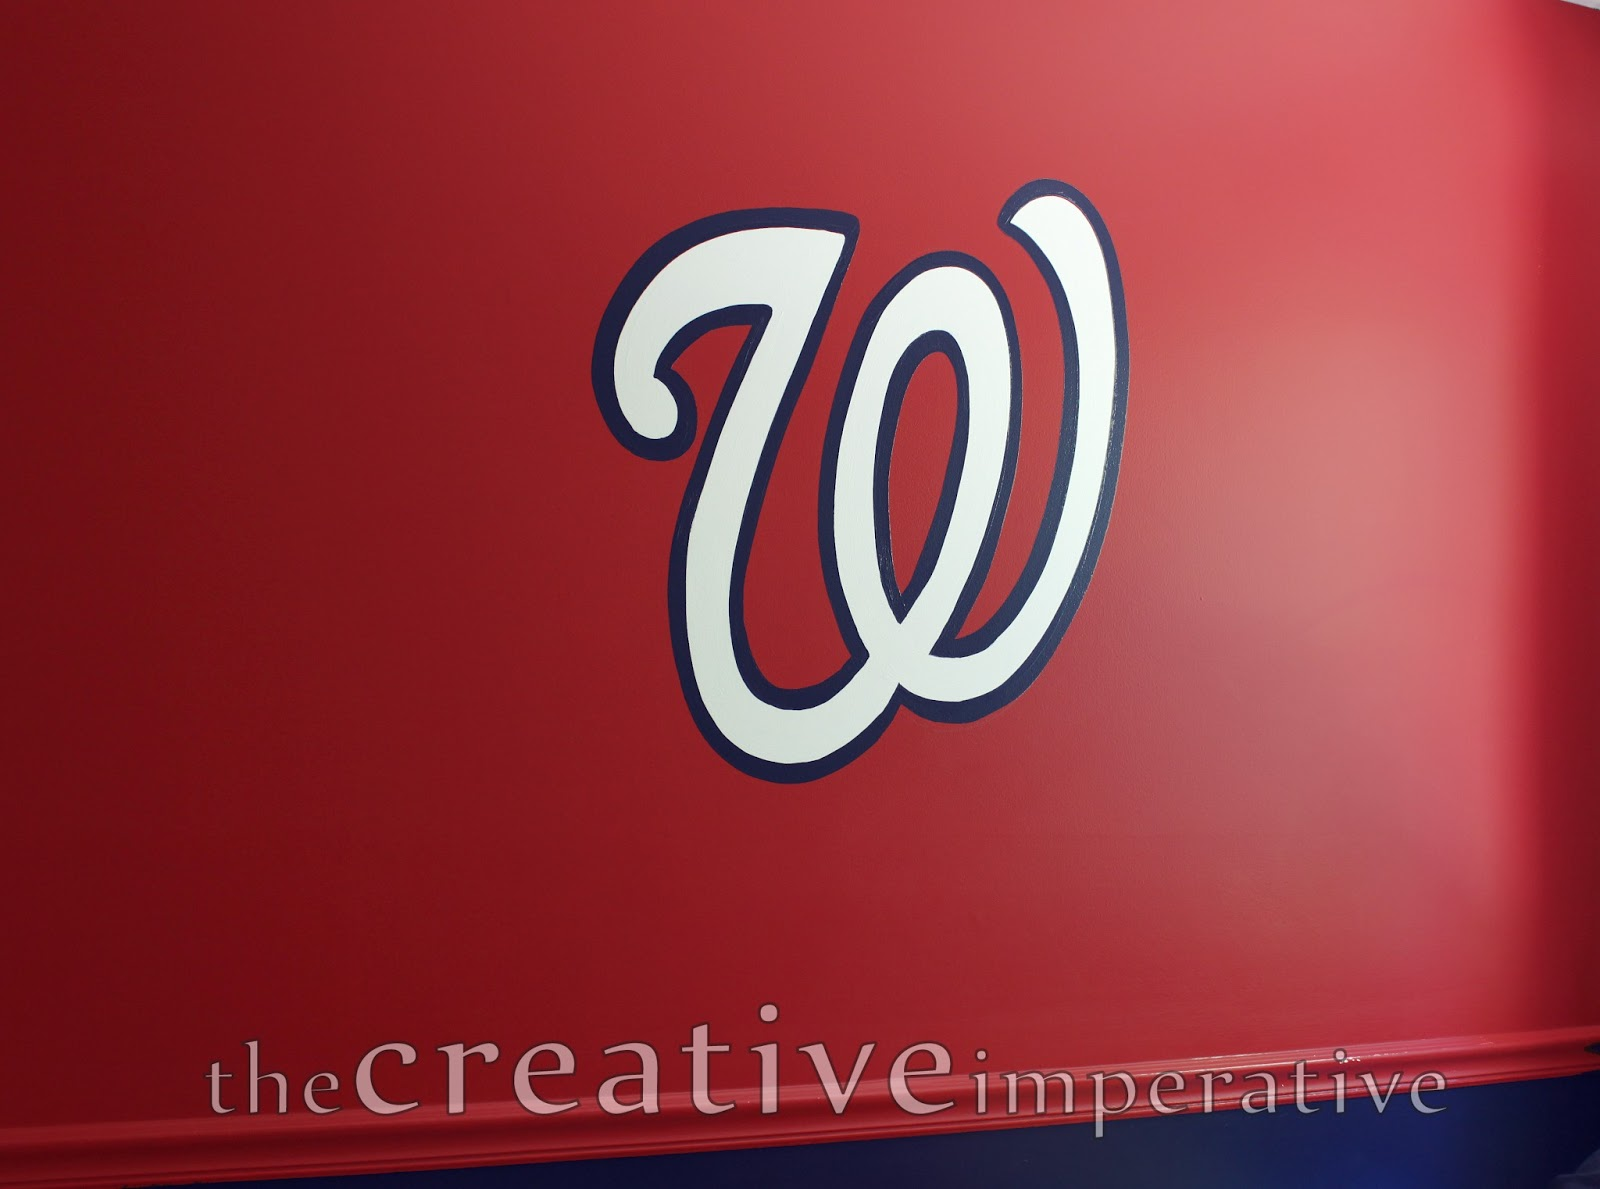 the creative imperative some yankees and nationals baseball murals he also had a baseball painted on his wall i have been wanting to paint a mural like this ever since i saw the inspiration here